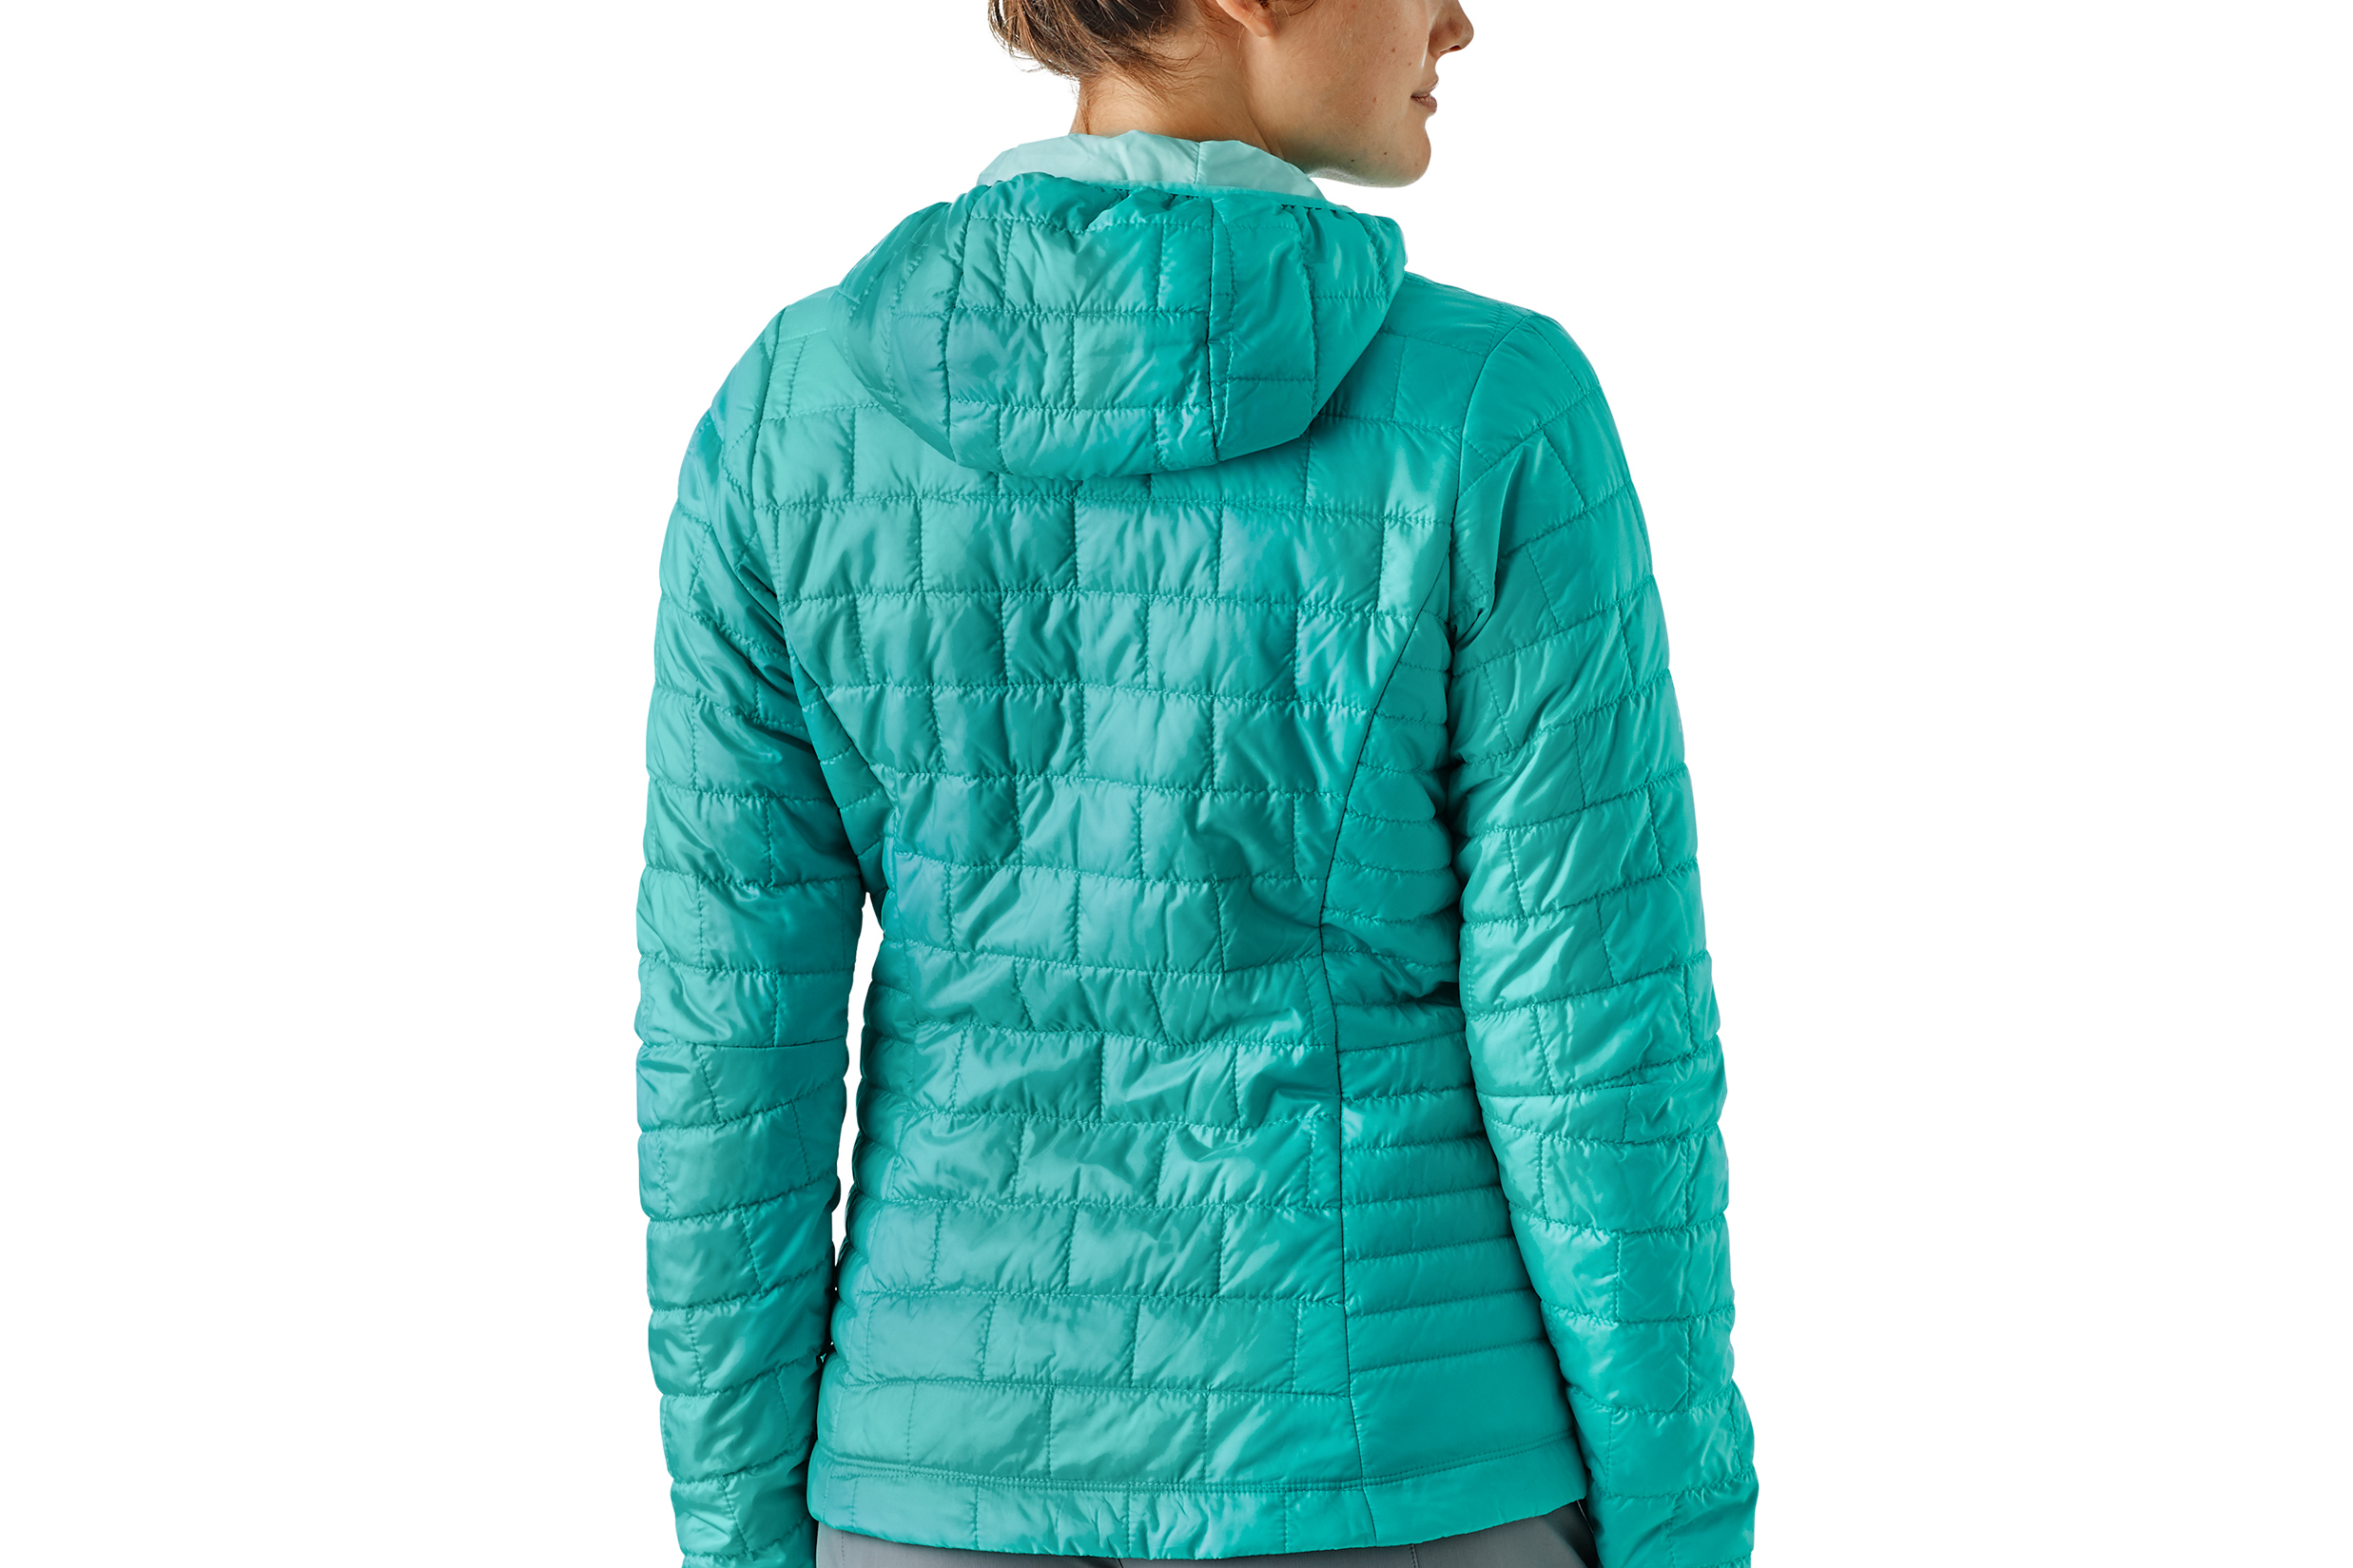 60f9a863b1b6 Patagonia Nano Puff Review  The Iconic Jacket Still Among the Best ...